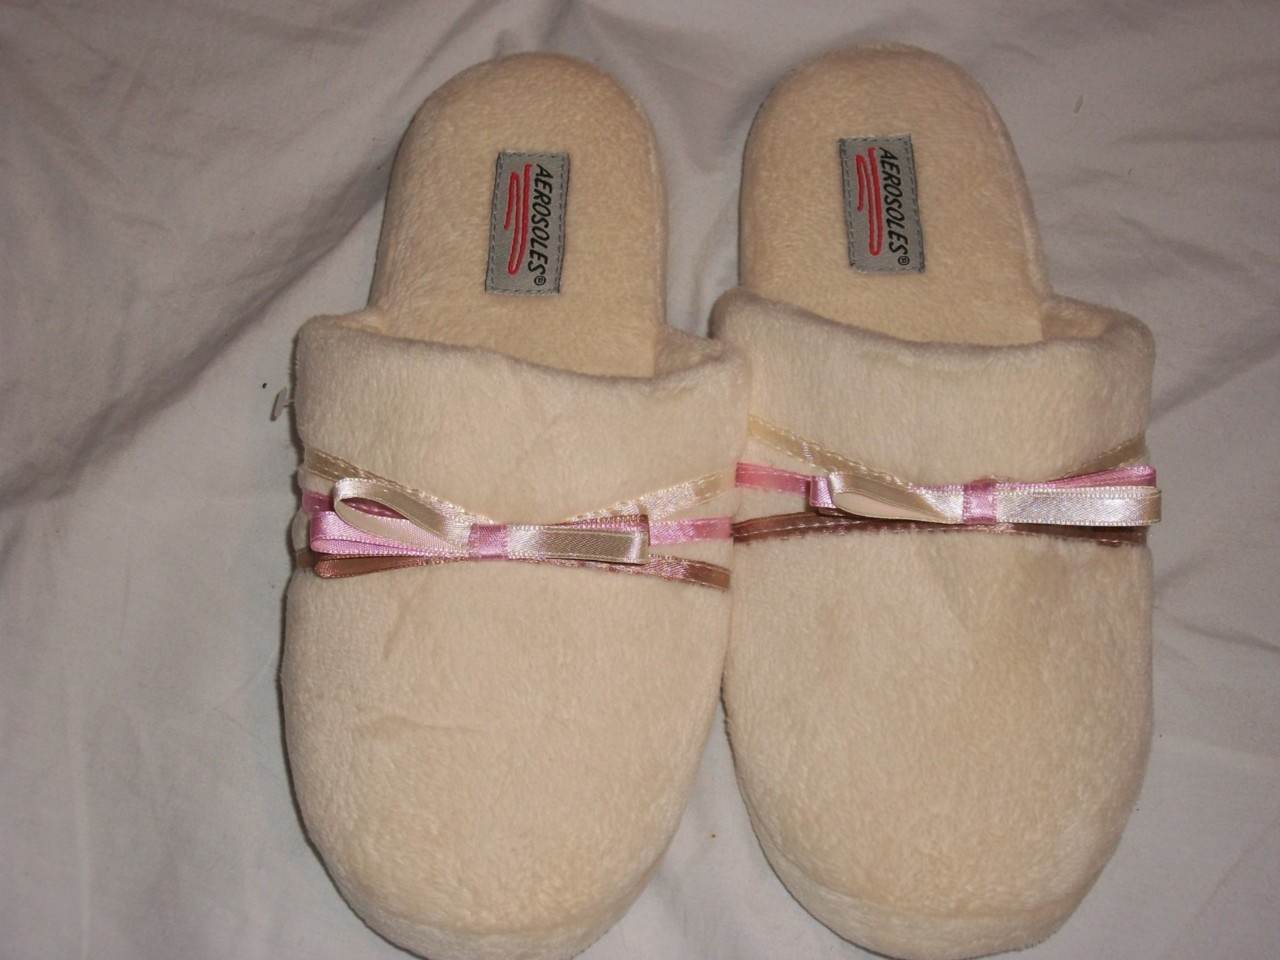 Bedroom Shoes For Womens  NWT AEROSOLES WOMEN S BEDROOM SLIPPERS